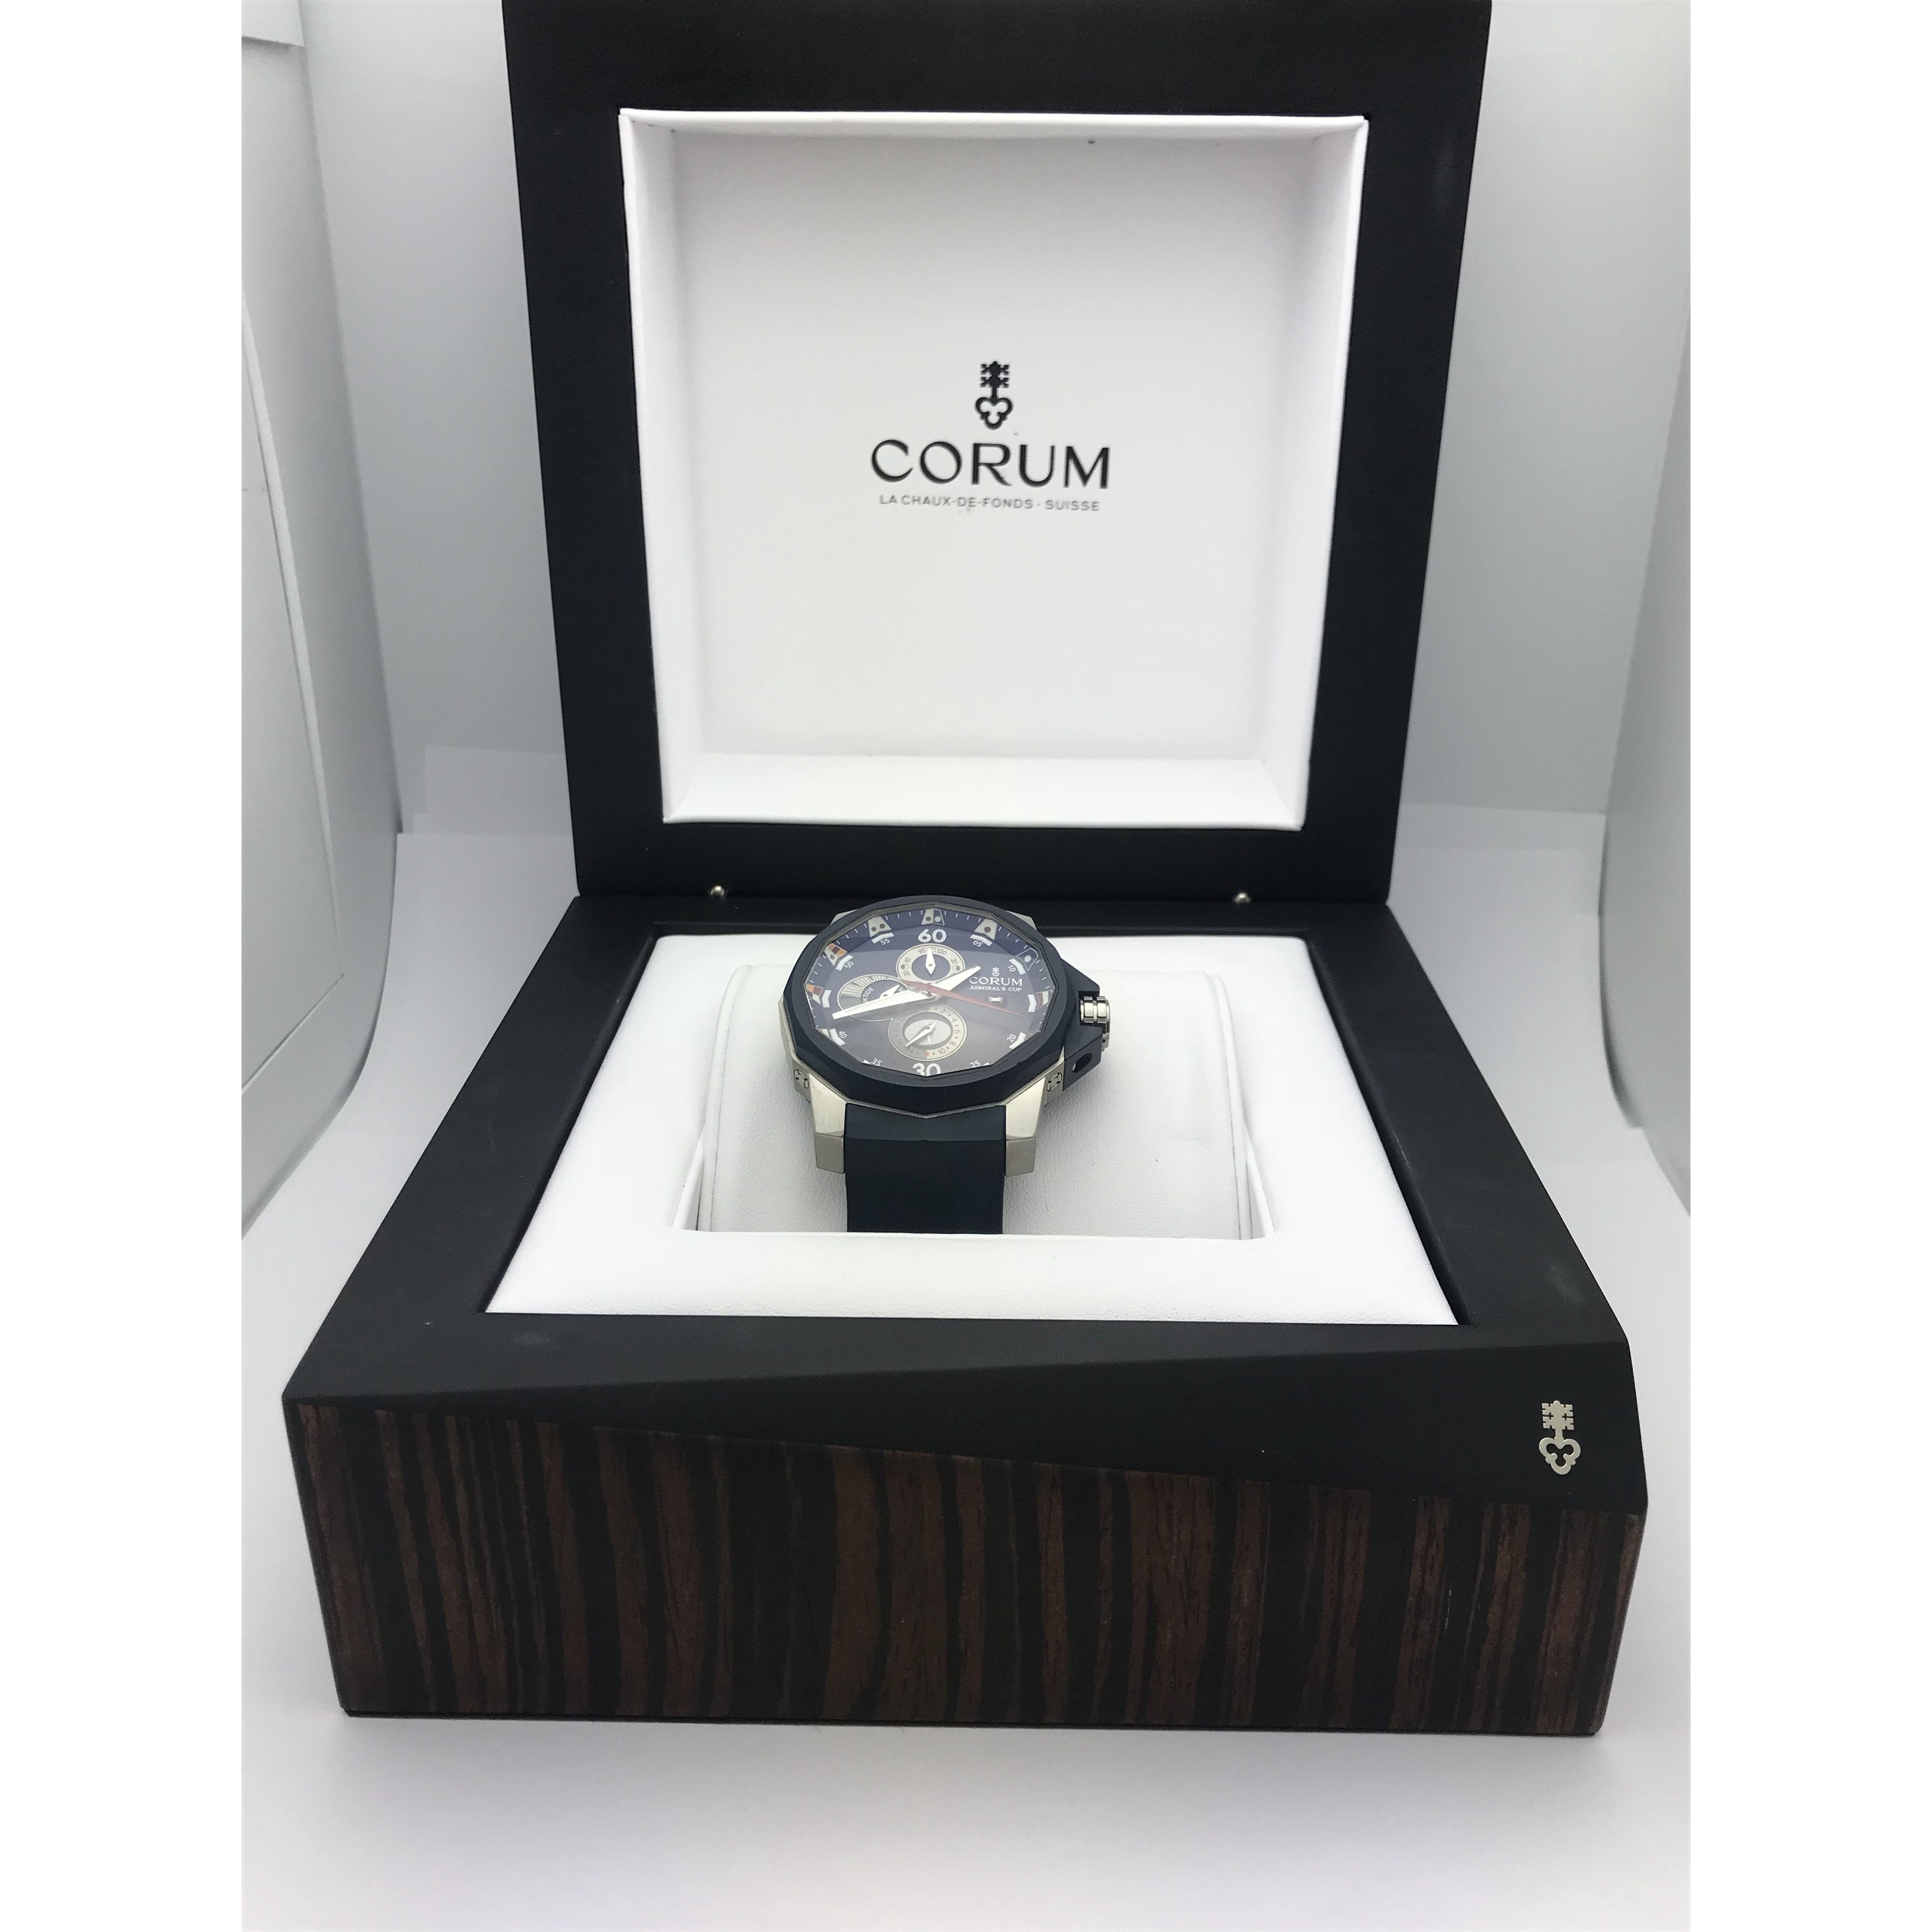 Corum Men's Admiral's Cup Tides Automatic Watch 277-933-06-0373-AB12